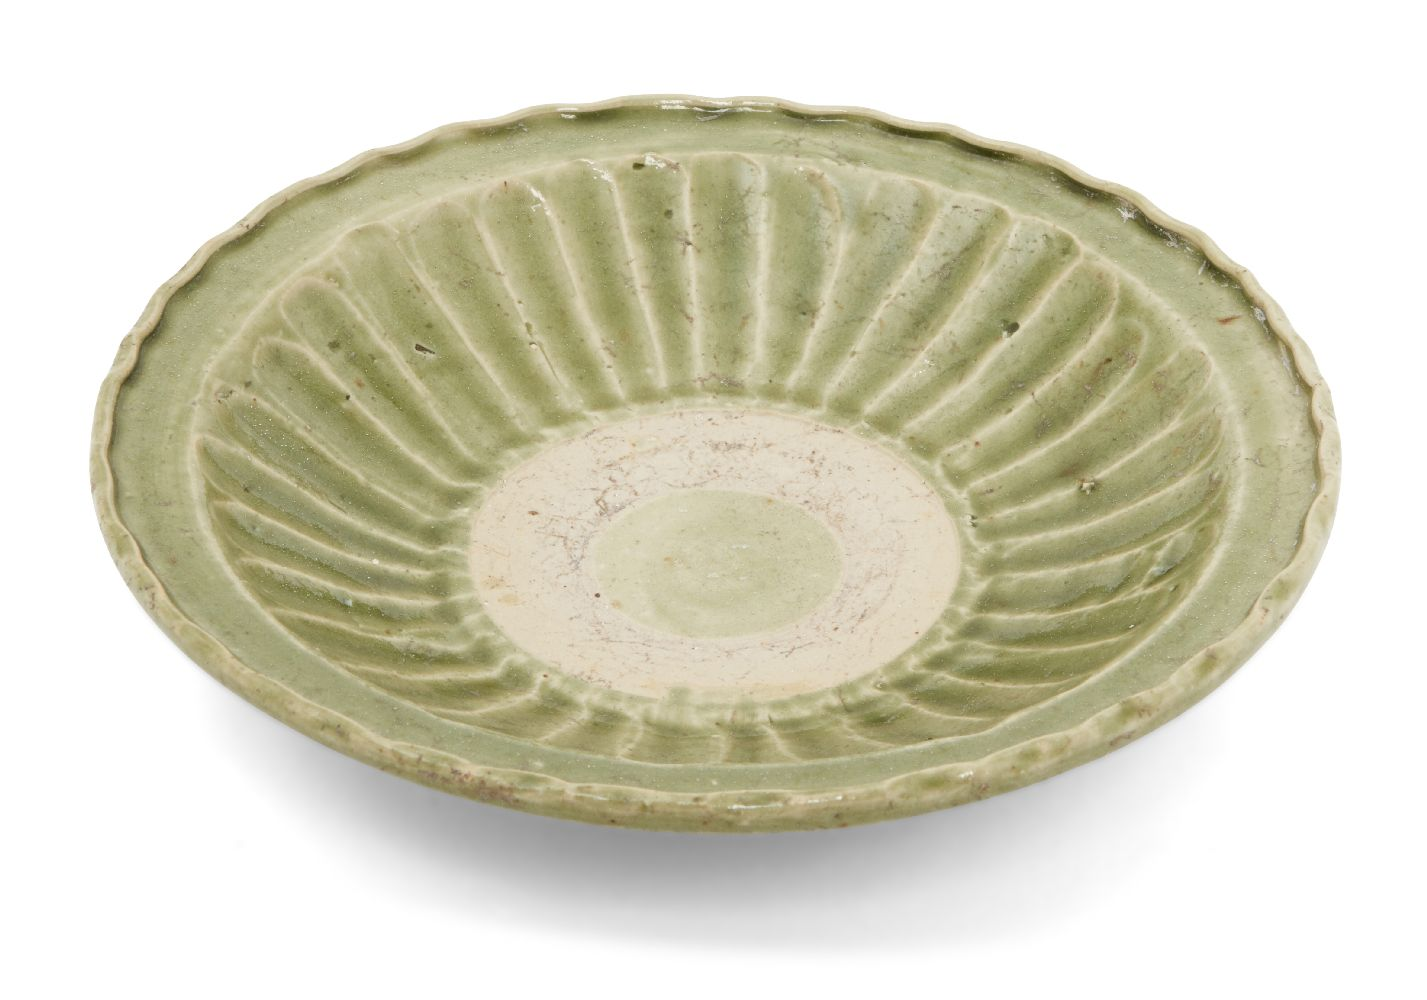 A Vietnamese stoneware green-glazed dish, 14th century, with pinched petal design to the interior